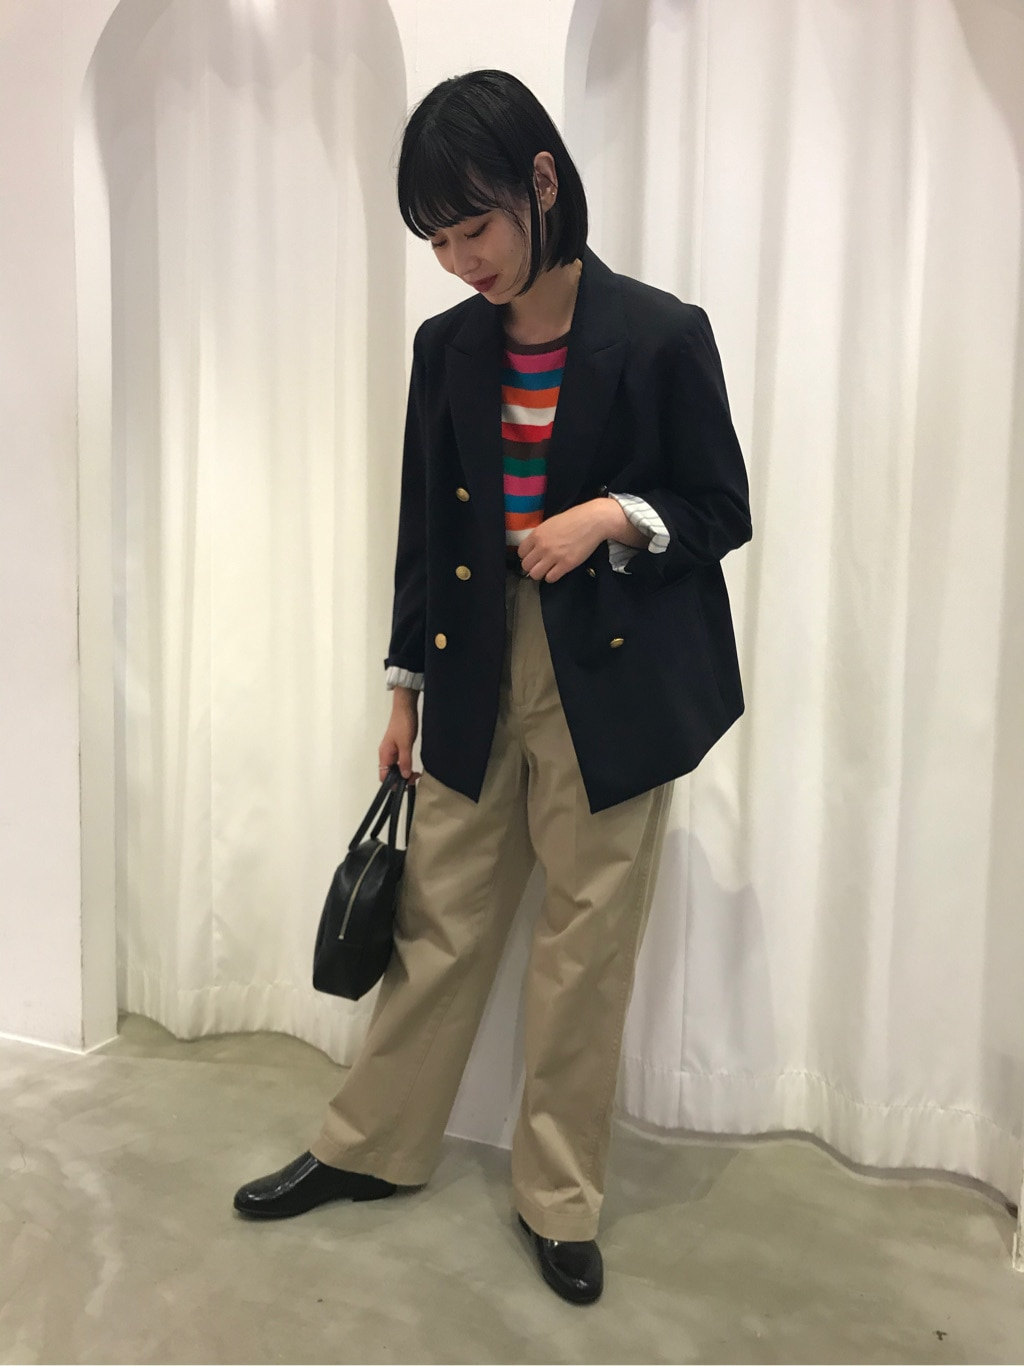 Dot and Stripes CHILD WOMAN ラフォーレ原宿 身長:158cm 2020.08.04